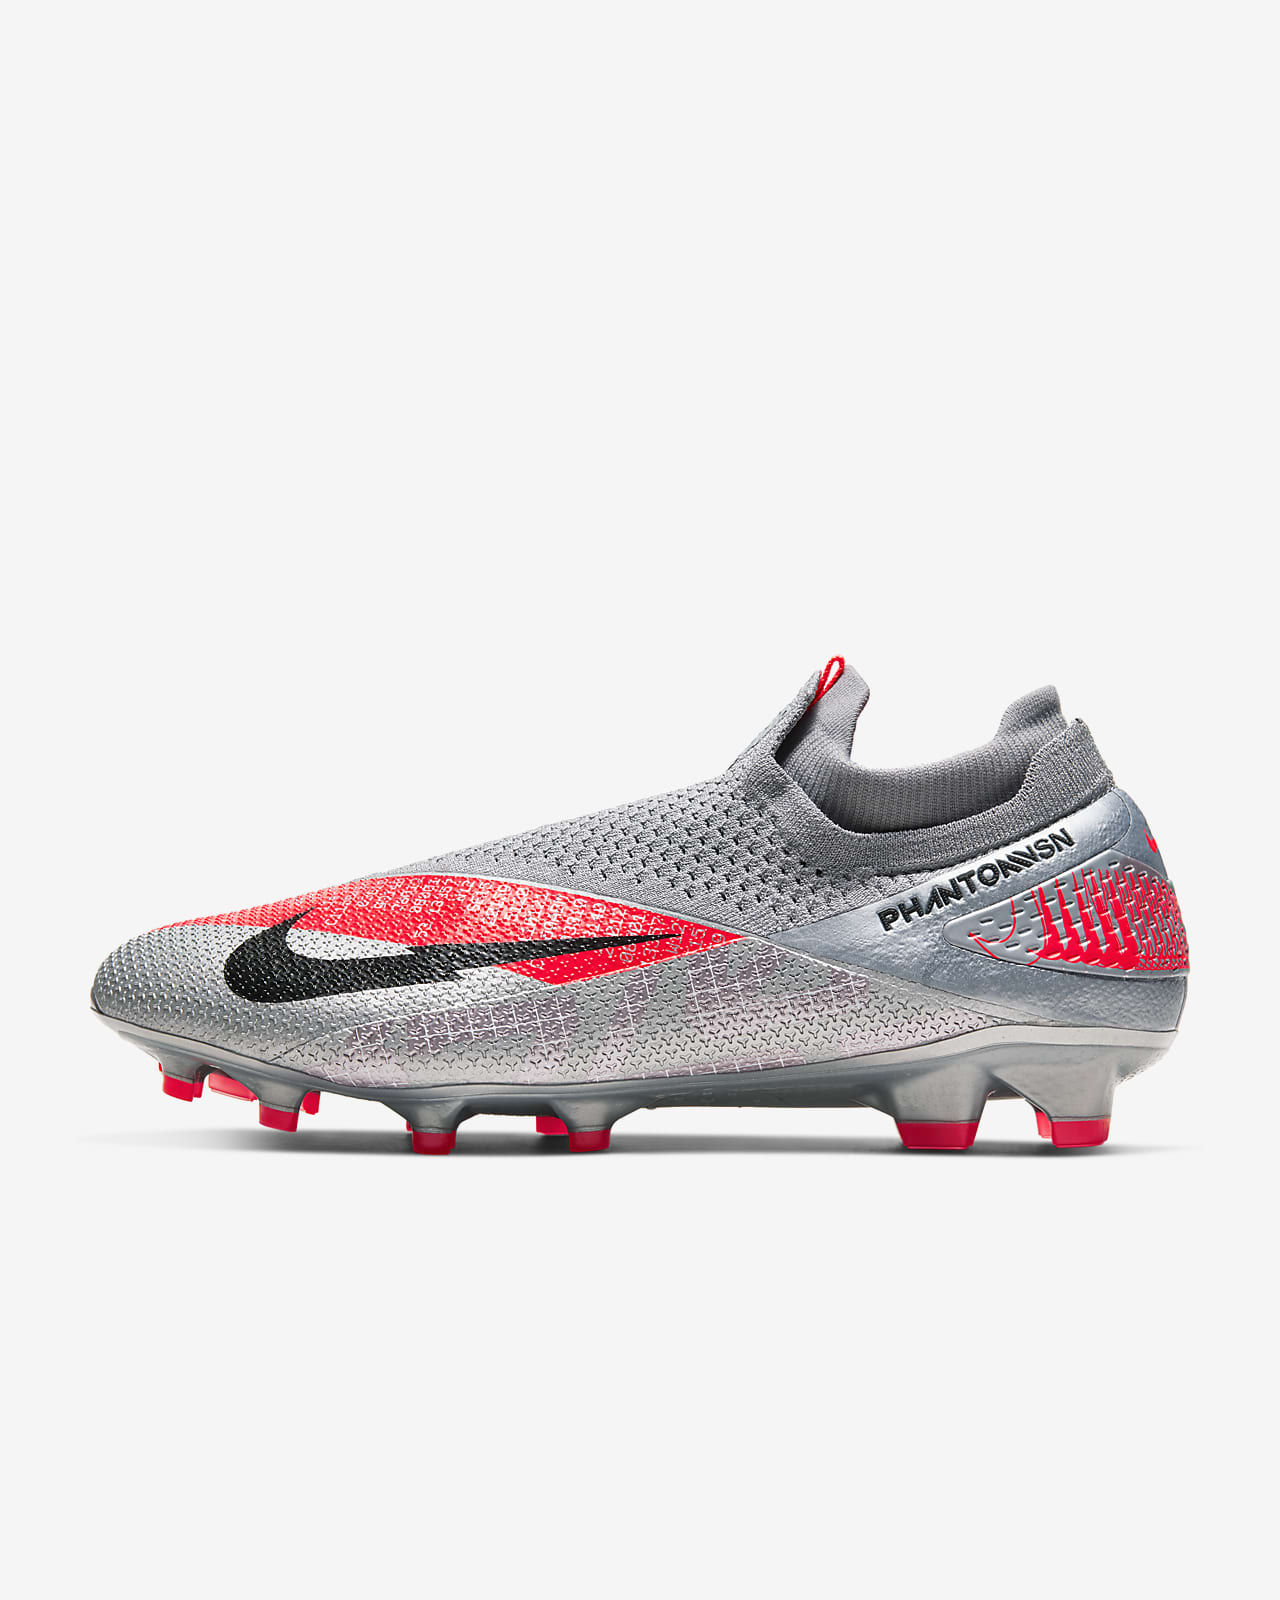 Chaussure de football à crampons pour terrain sec Nike Phantom Vision 2 Elite Dynamic Fit FG